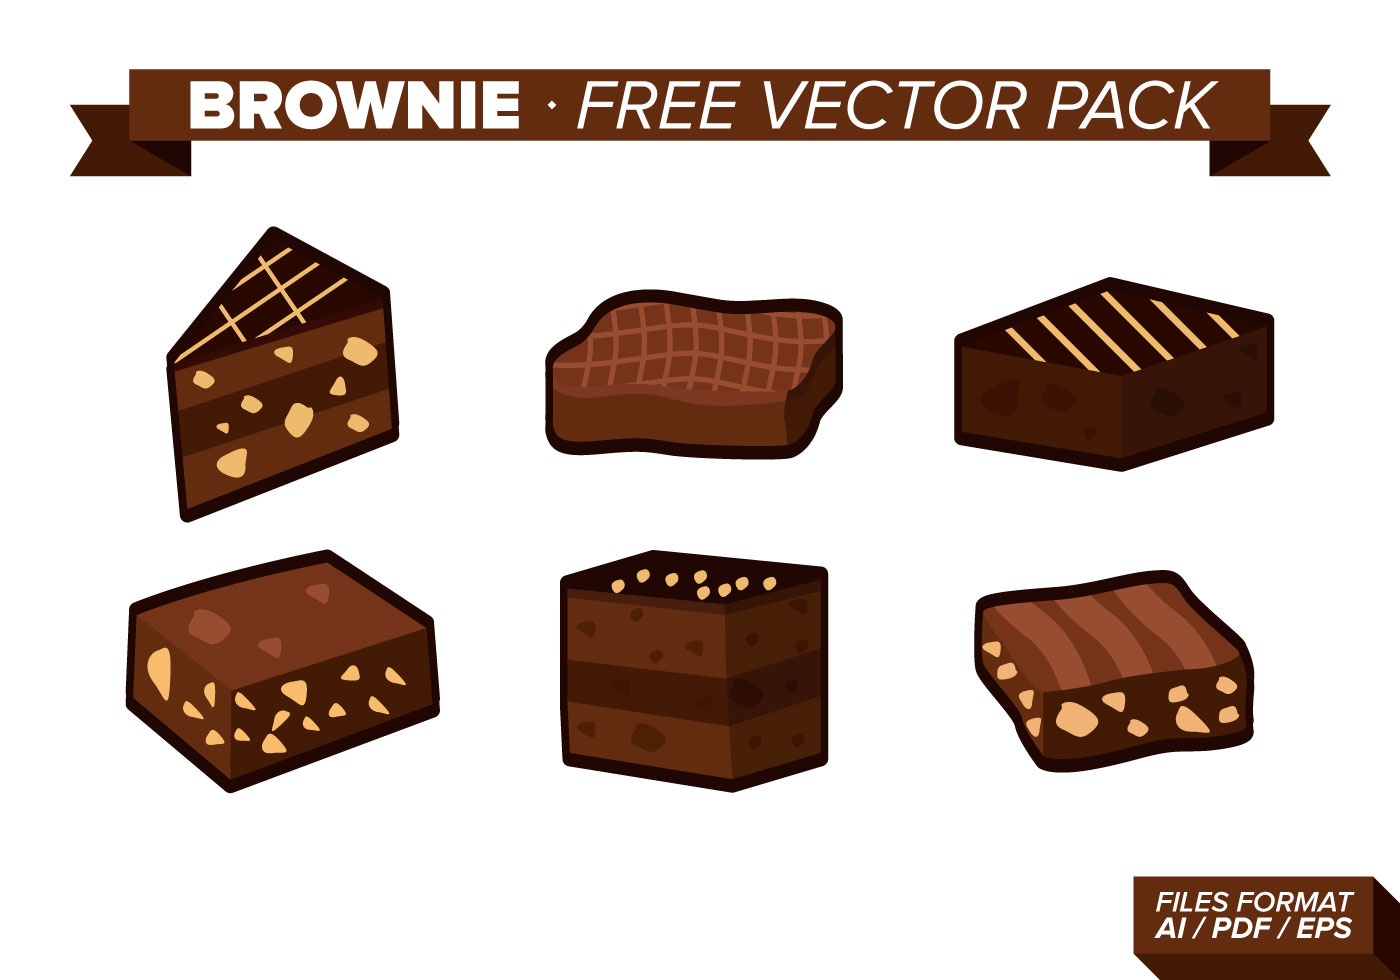 Brownie Free Vector Pack Download Free Vector Art Stock